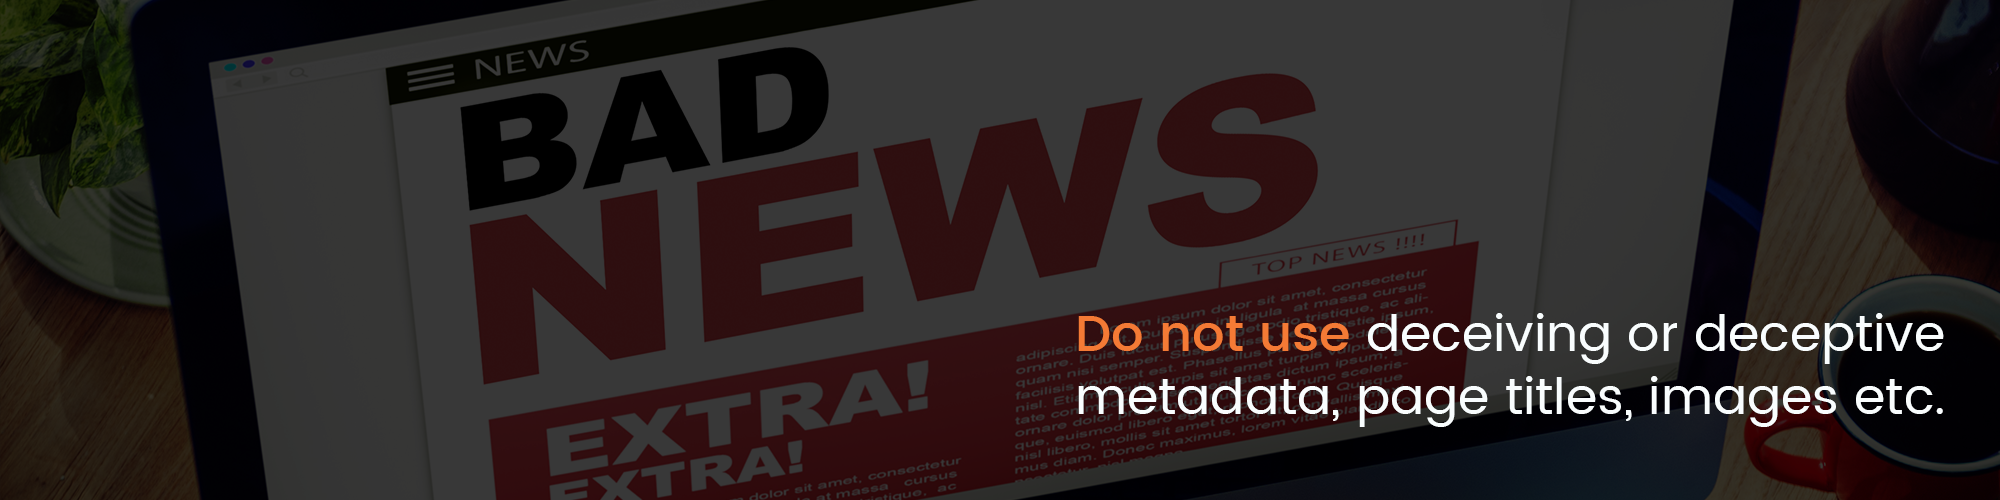 Do not use deceiving or deceptive metadata, page titles, images, etc.